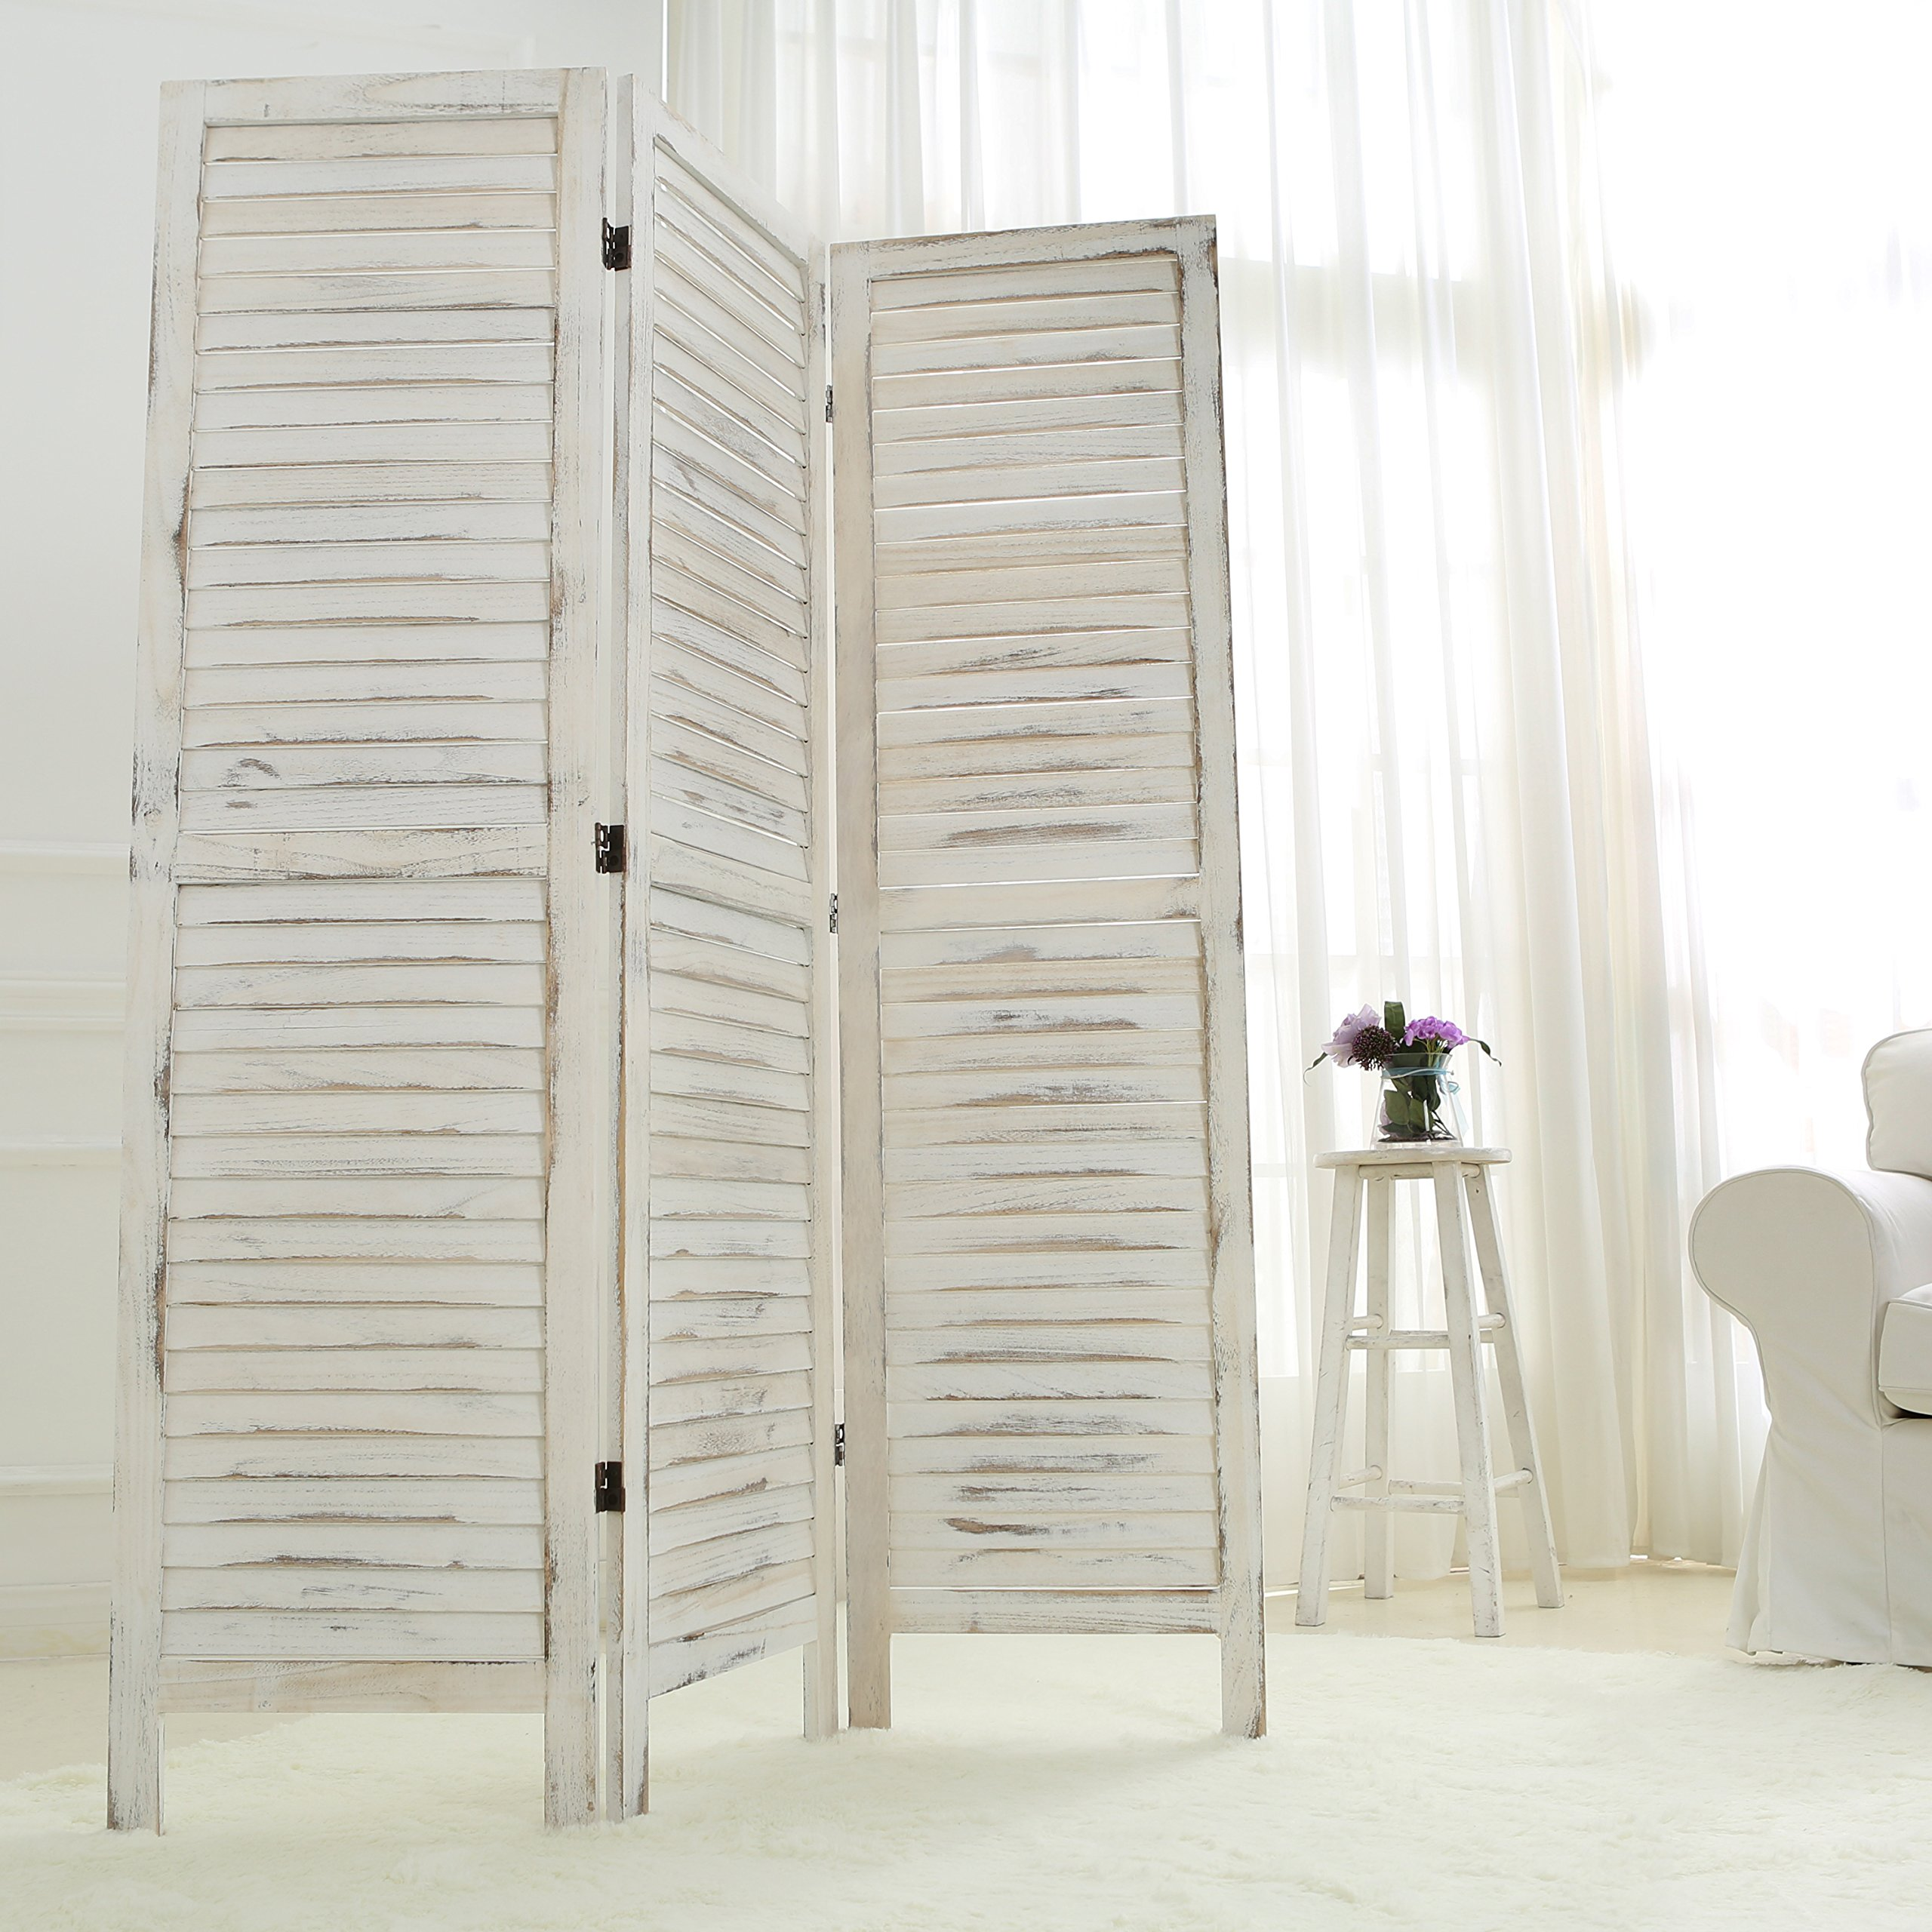 MyGift Whitewashed Wood 3 Panel Screen, Folding Louvered Room Divider by MyGift (Image #3)